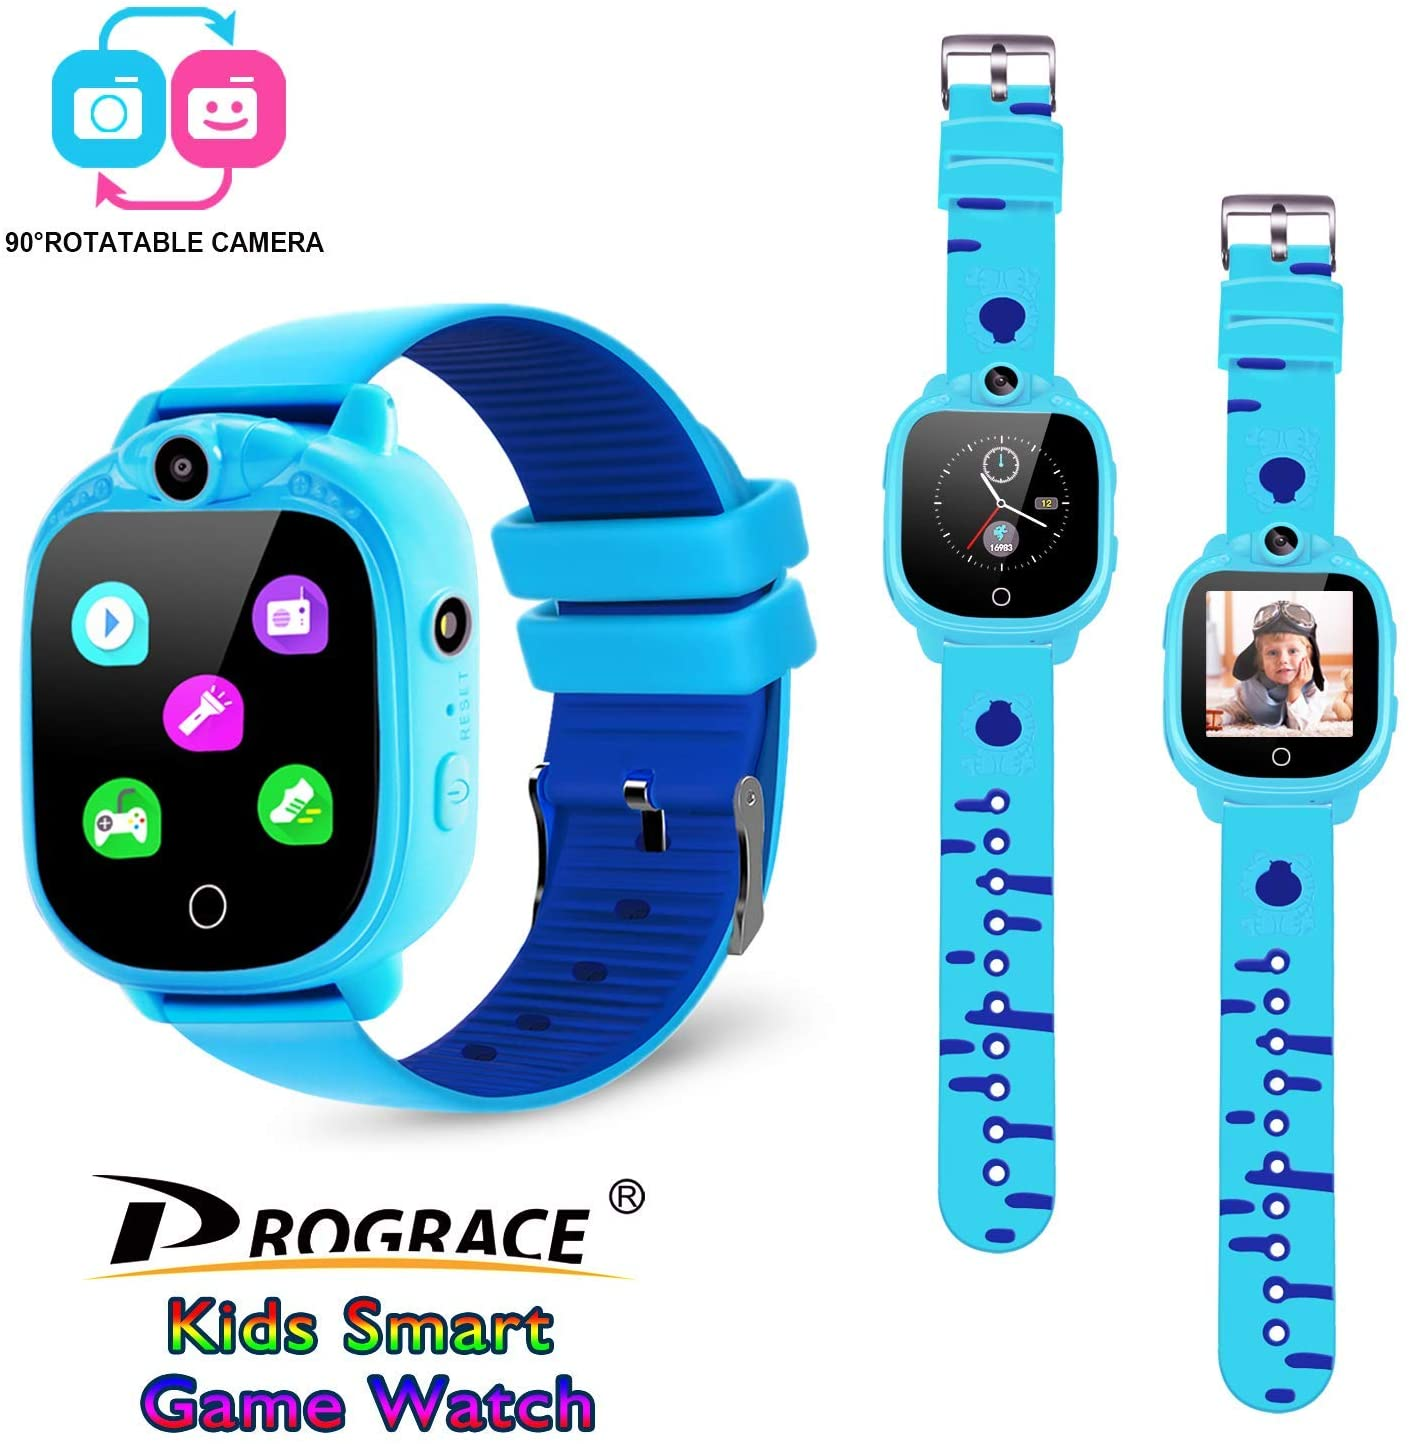 PROGRACE Kids Smartwatch with 90°Rotatable Camera...